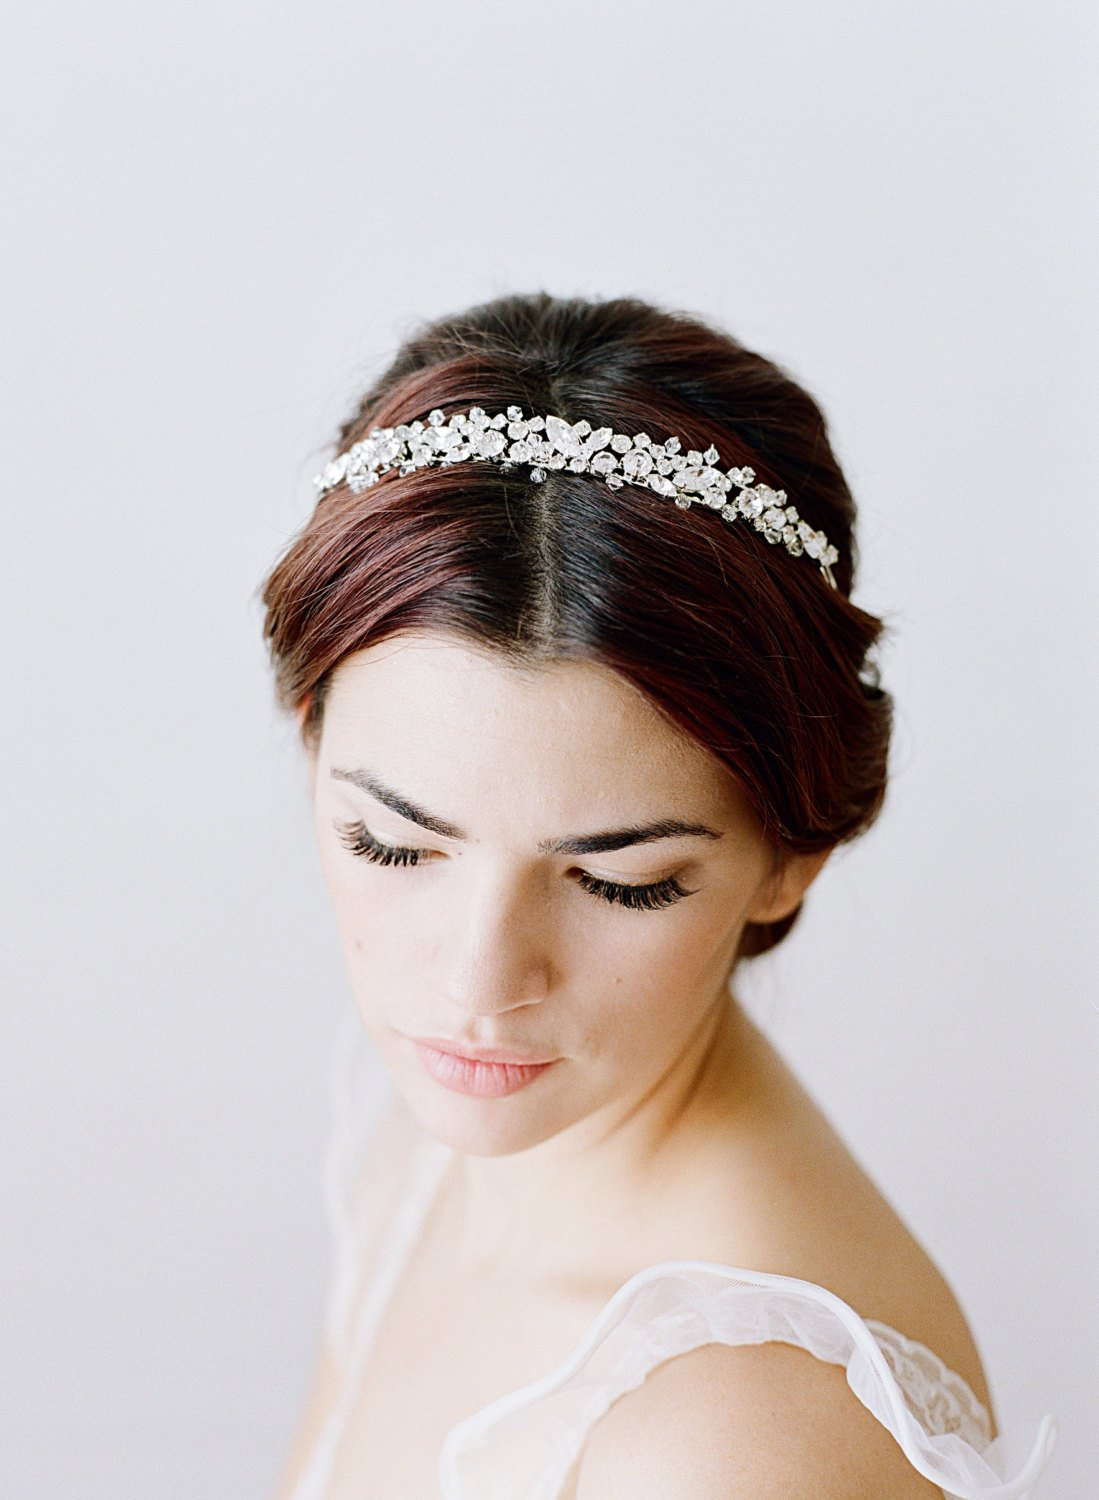 Bridal Headband, Swarovski Crystal Headband, Wedding Headband, Bridal Wedding Headband, Swarovski Crystal Bridal Hair Accessory.jpg